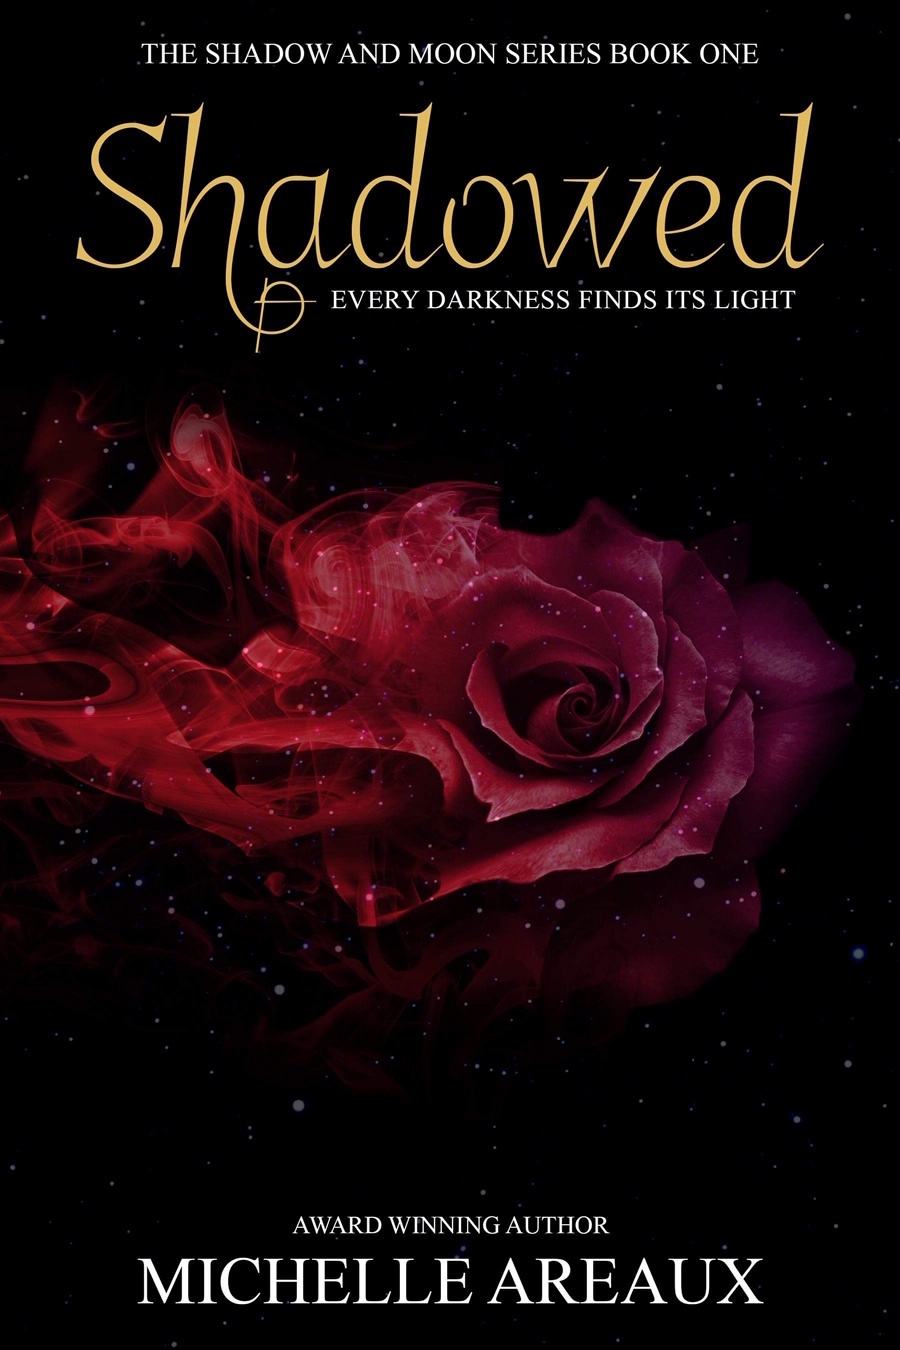 Shadowed, by Michelle Areaux